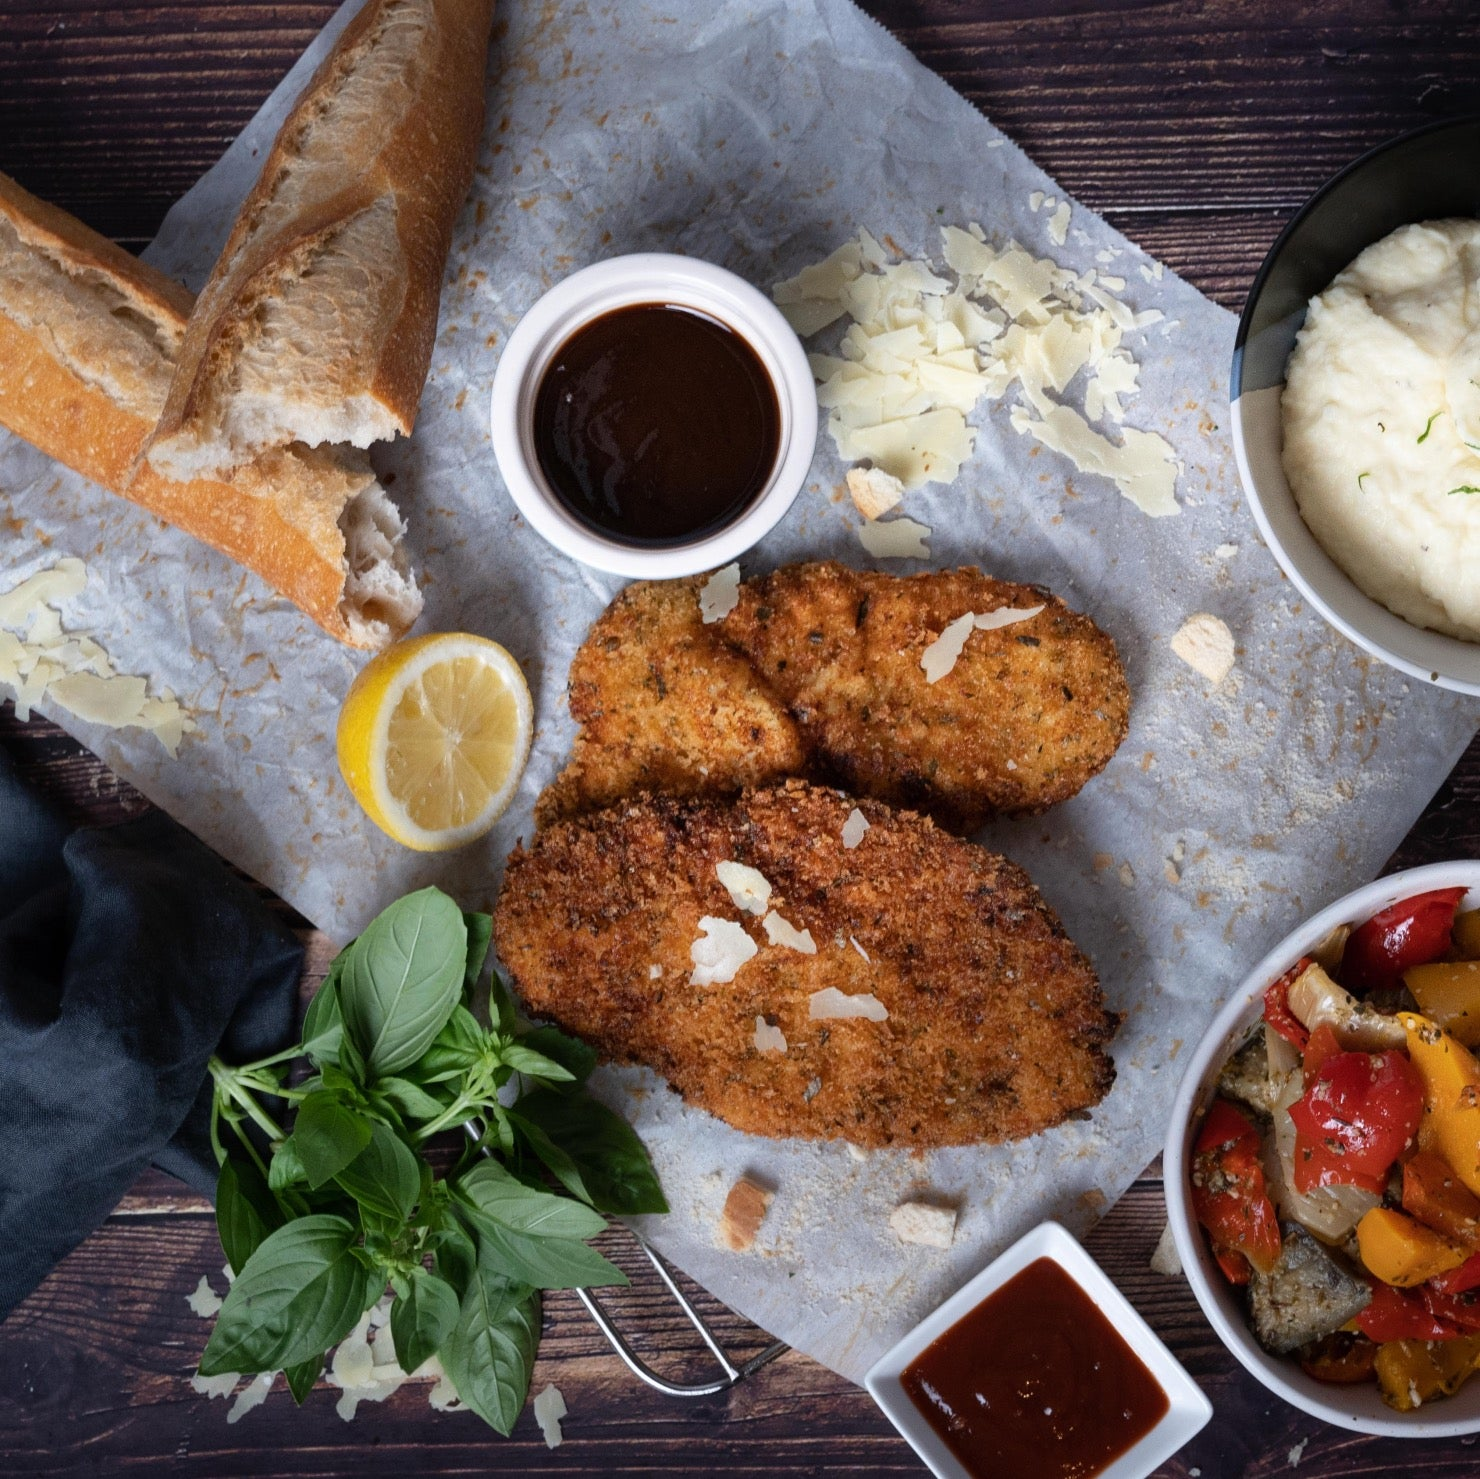 Chicken Schnitzel with BBQ sauce and bread on a flat tray